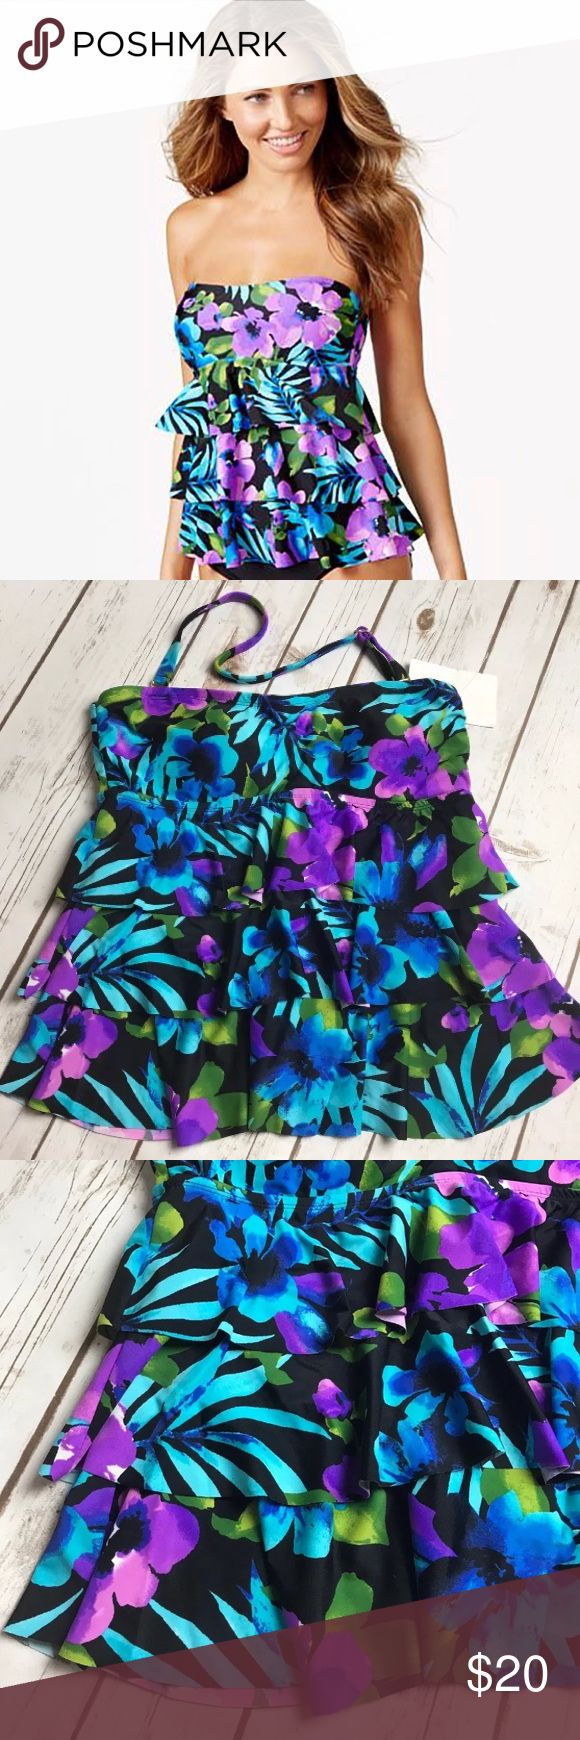 NEW Island Escape Ruffle Halter Tankini Swim Top About this item: Brand: Island Escape Size/Fit: Size 8 Color: Black / Purple / Blue Flaws: None. Brand new w tags.   💕Feedback is appreciated! Please contact me before leaving negative or neutral feedback.  ❌No swaps or trades.  ❌No PayPal  ✨Please understand I try to capture colors as best I can. Due to differences in computer & phone screens resolution, the colors may appear slightly different.   SKU:RR025 Island Escape Swim